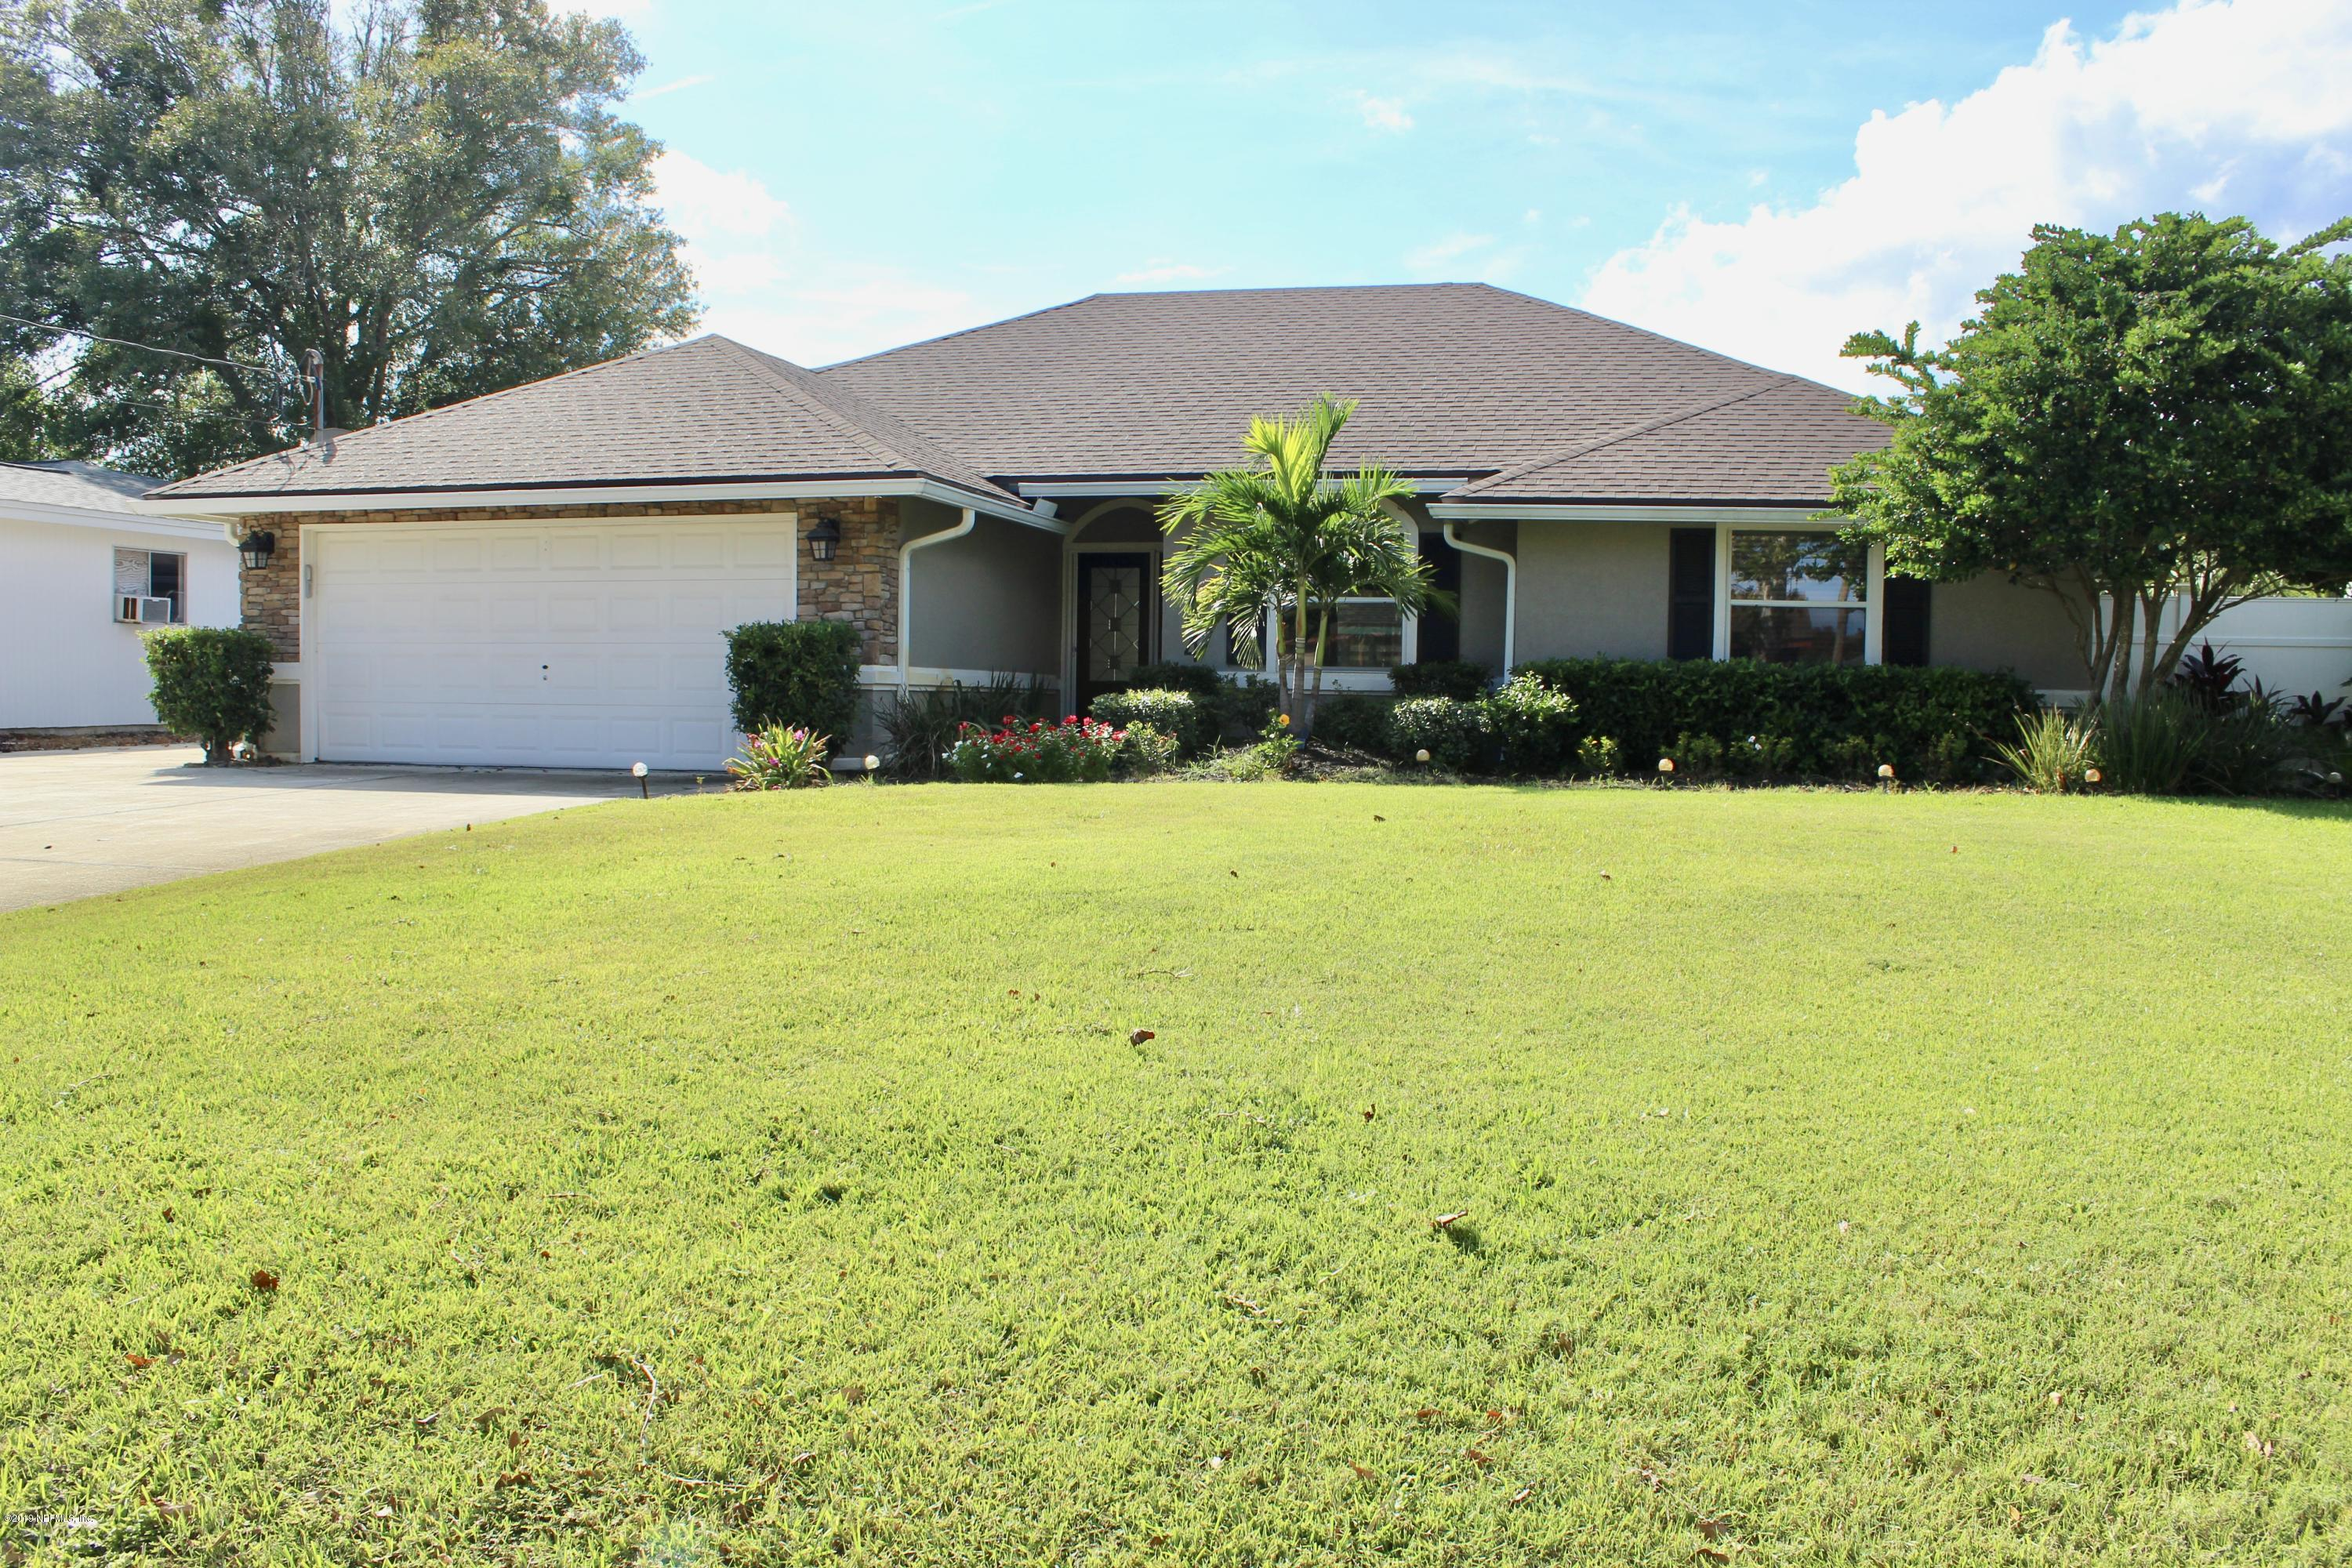 4184 COQUINA, JACKSONVILLE, FLORIDA 32250, 3 Bedrooms Bedrooms, ,2 BathroomsBathrooms,Residential - single family,For sale,COQUINA,1021052